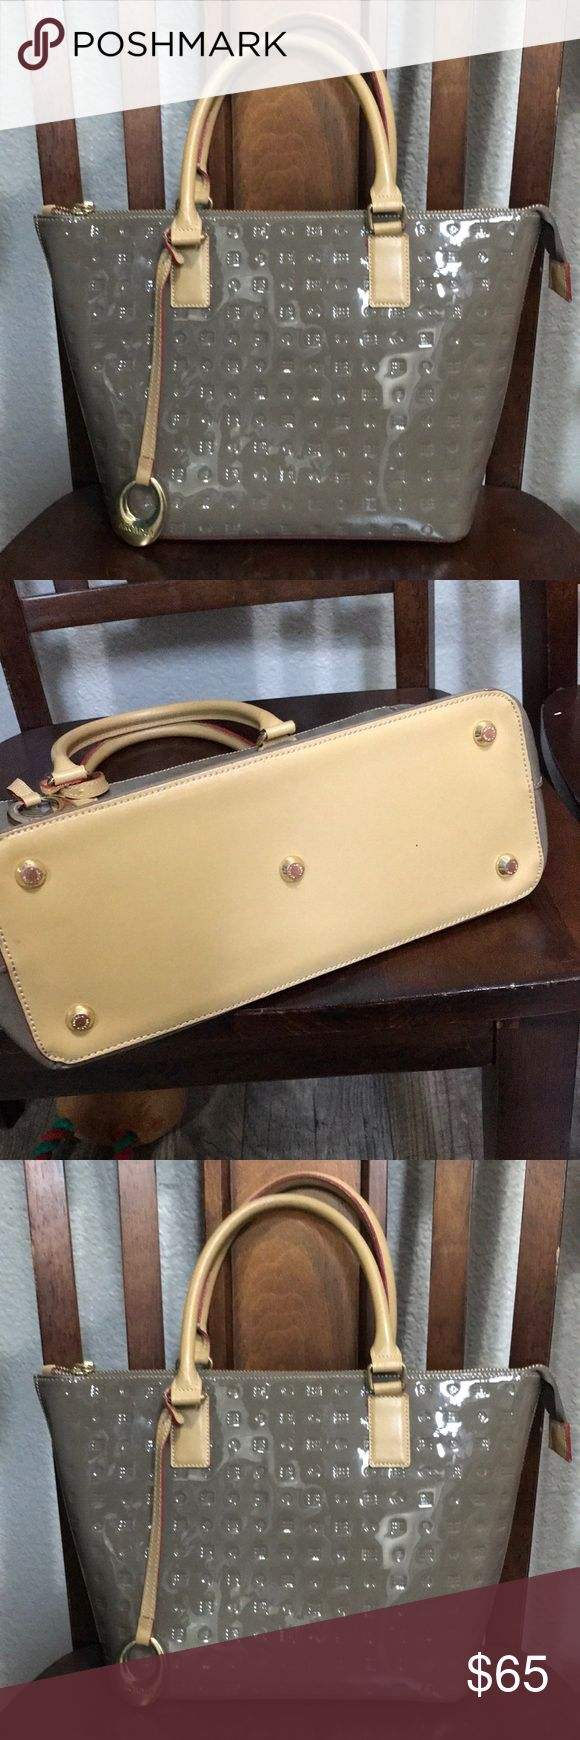 Arcadia I have for sale this beautiful purse arcadia Bags